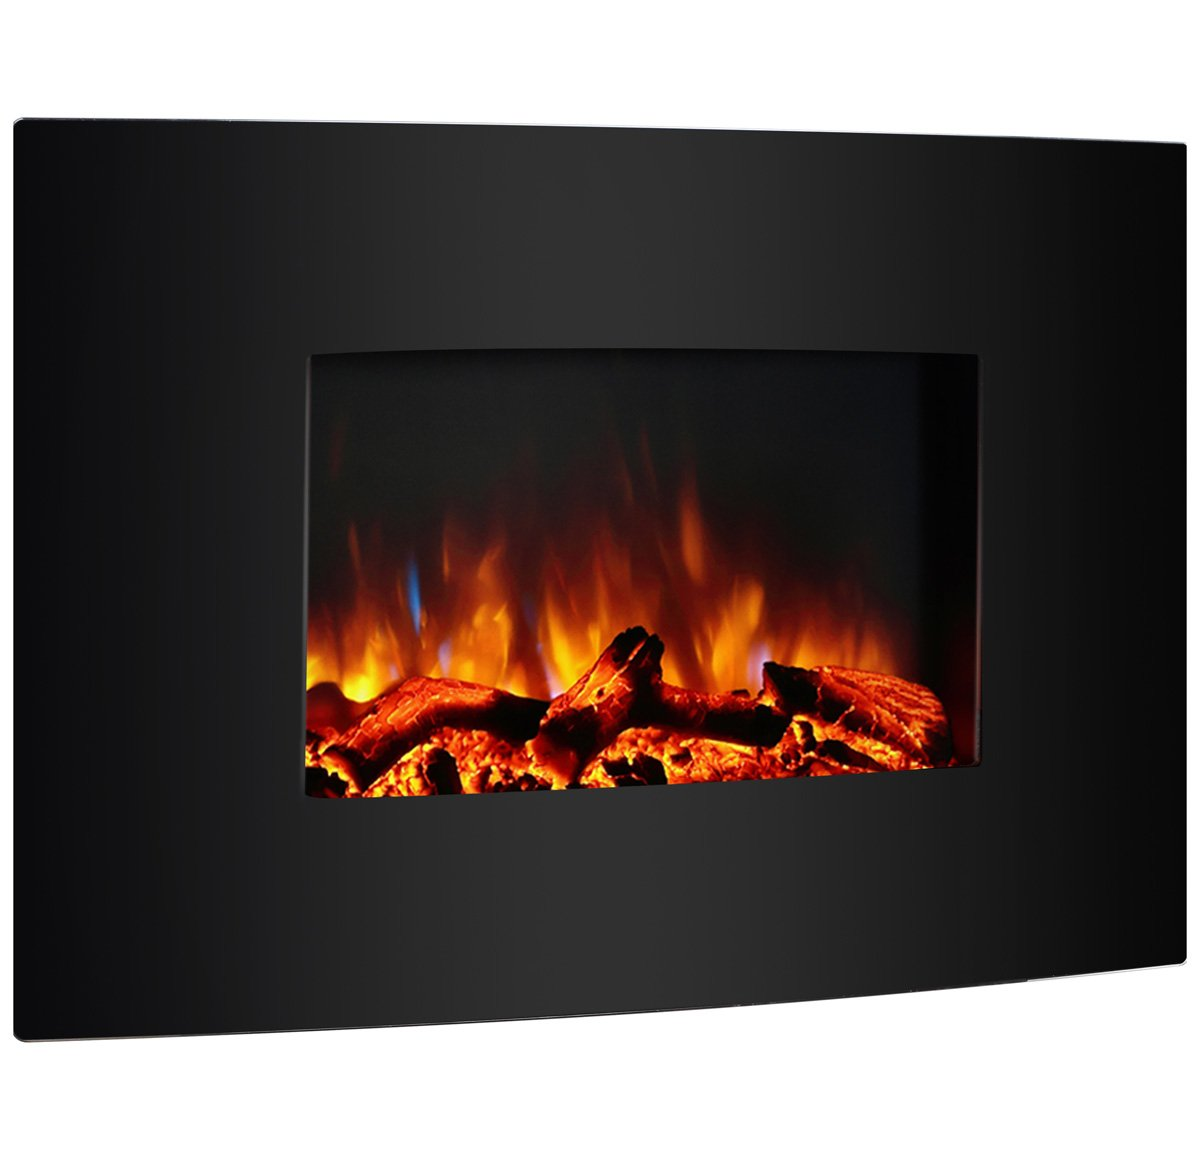 PuraFlame 36'' Vivian Wall Mounted Curved Panel Electric Fireplace with Remote Control, 1500W, Black